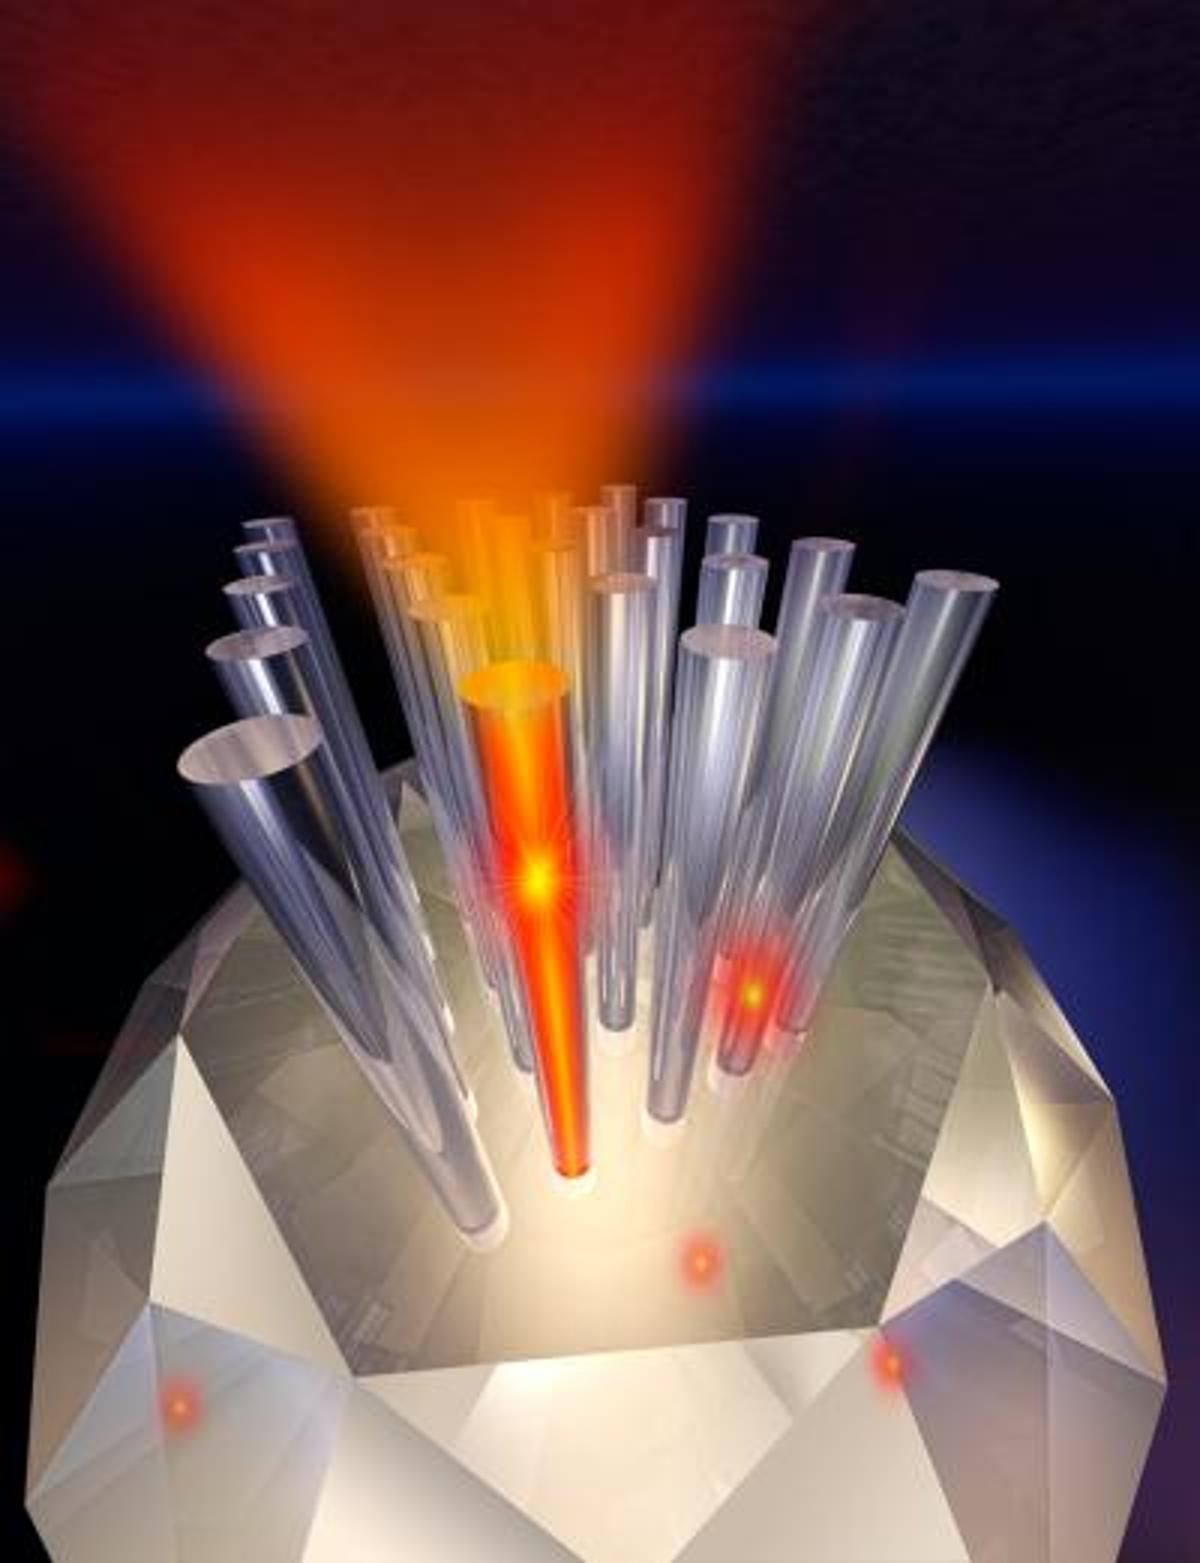 A diamond-based nanowire device (Illustrated by Jay Penni)